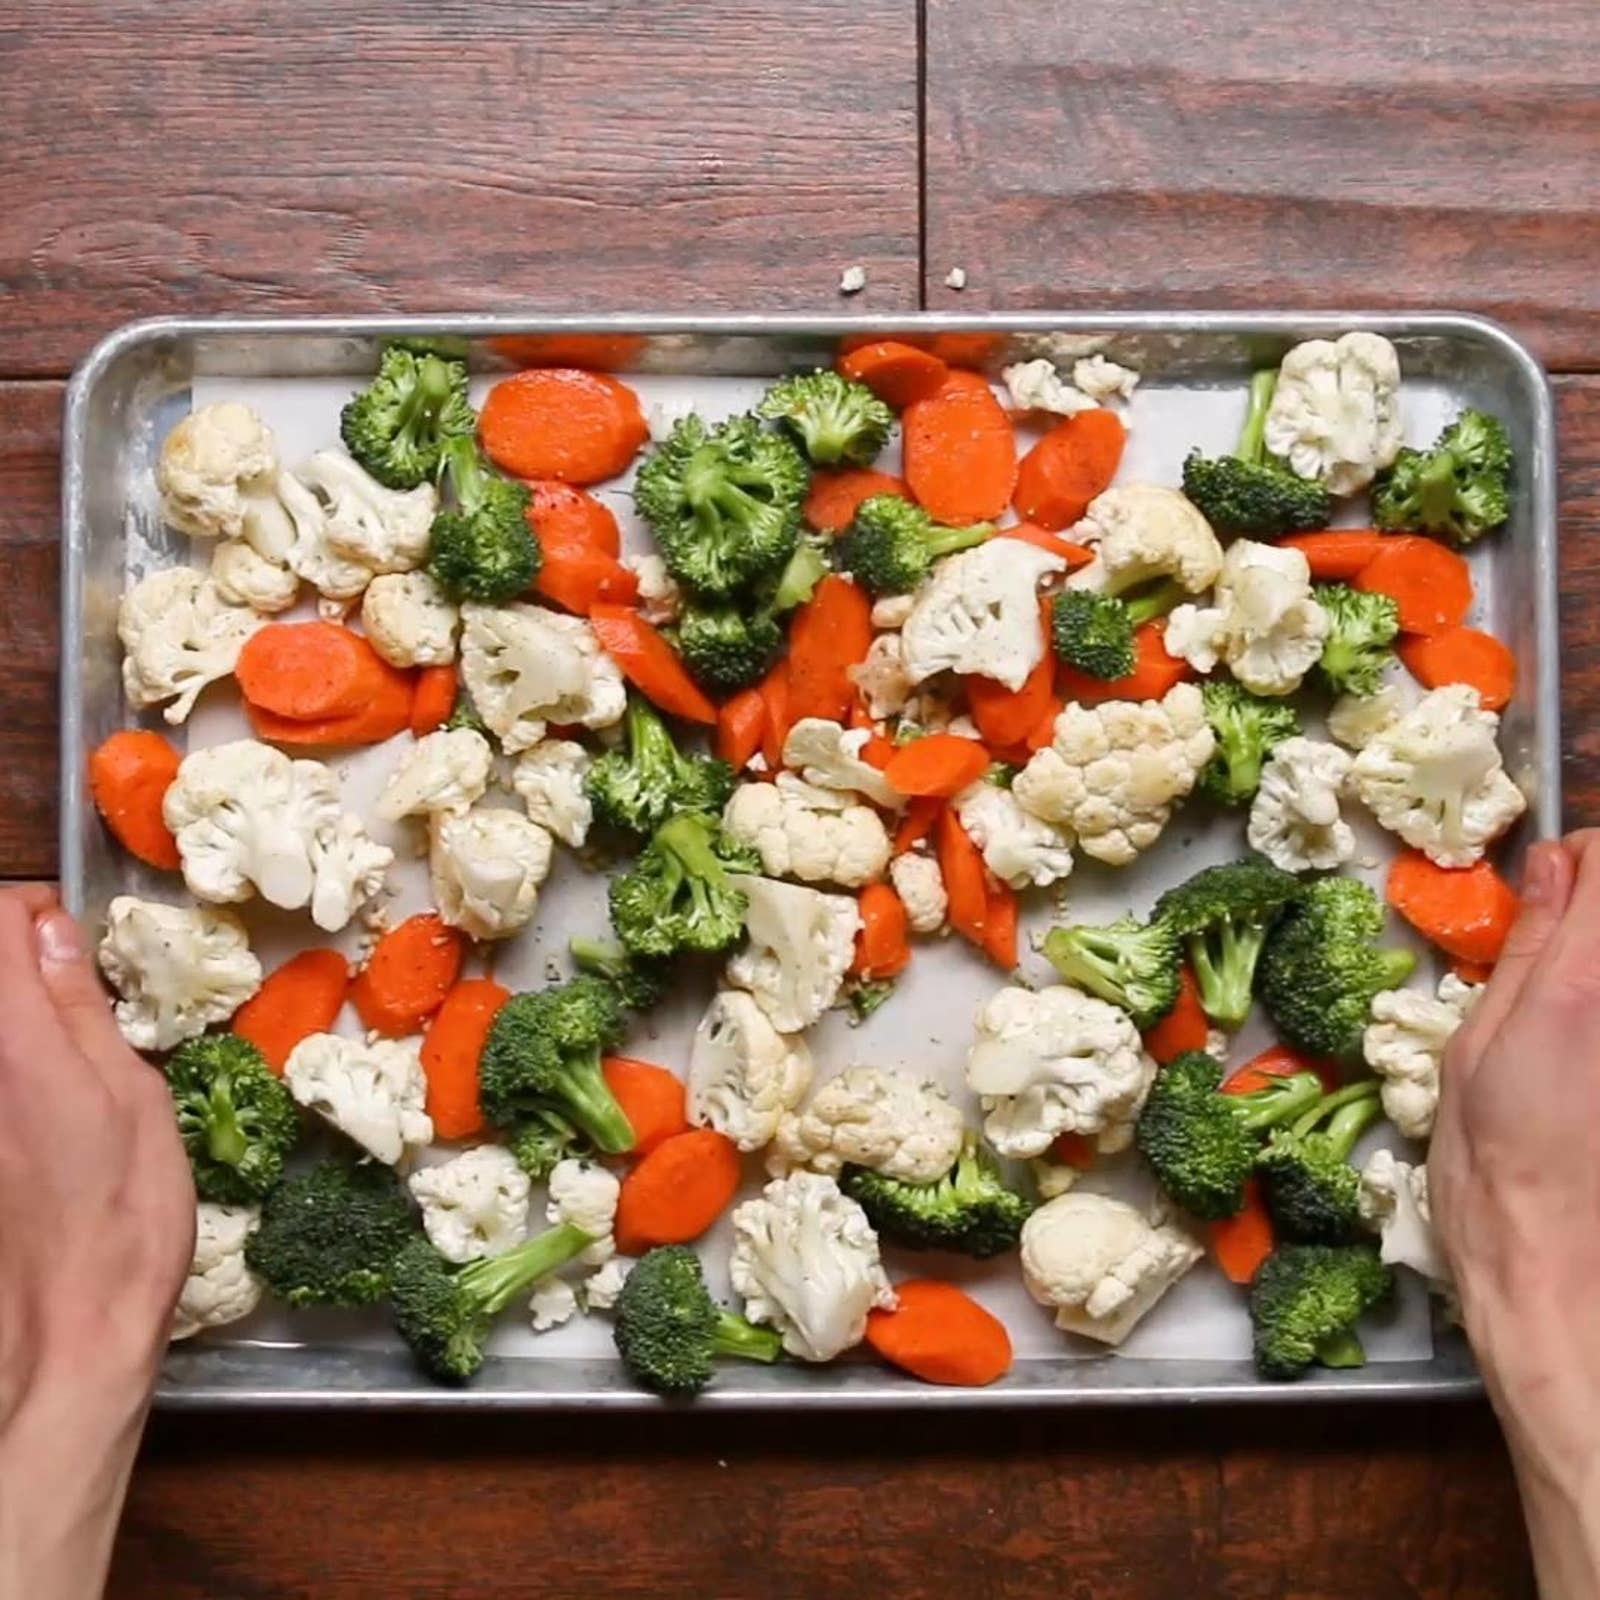 Cauliflower, broccoli, and carrots on a sheet pan.